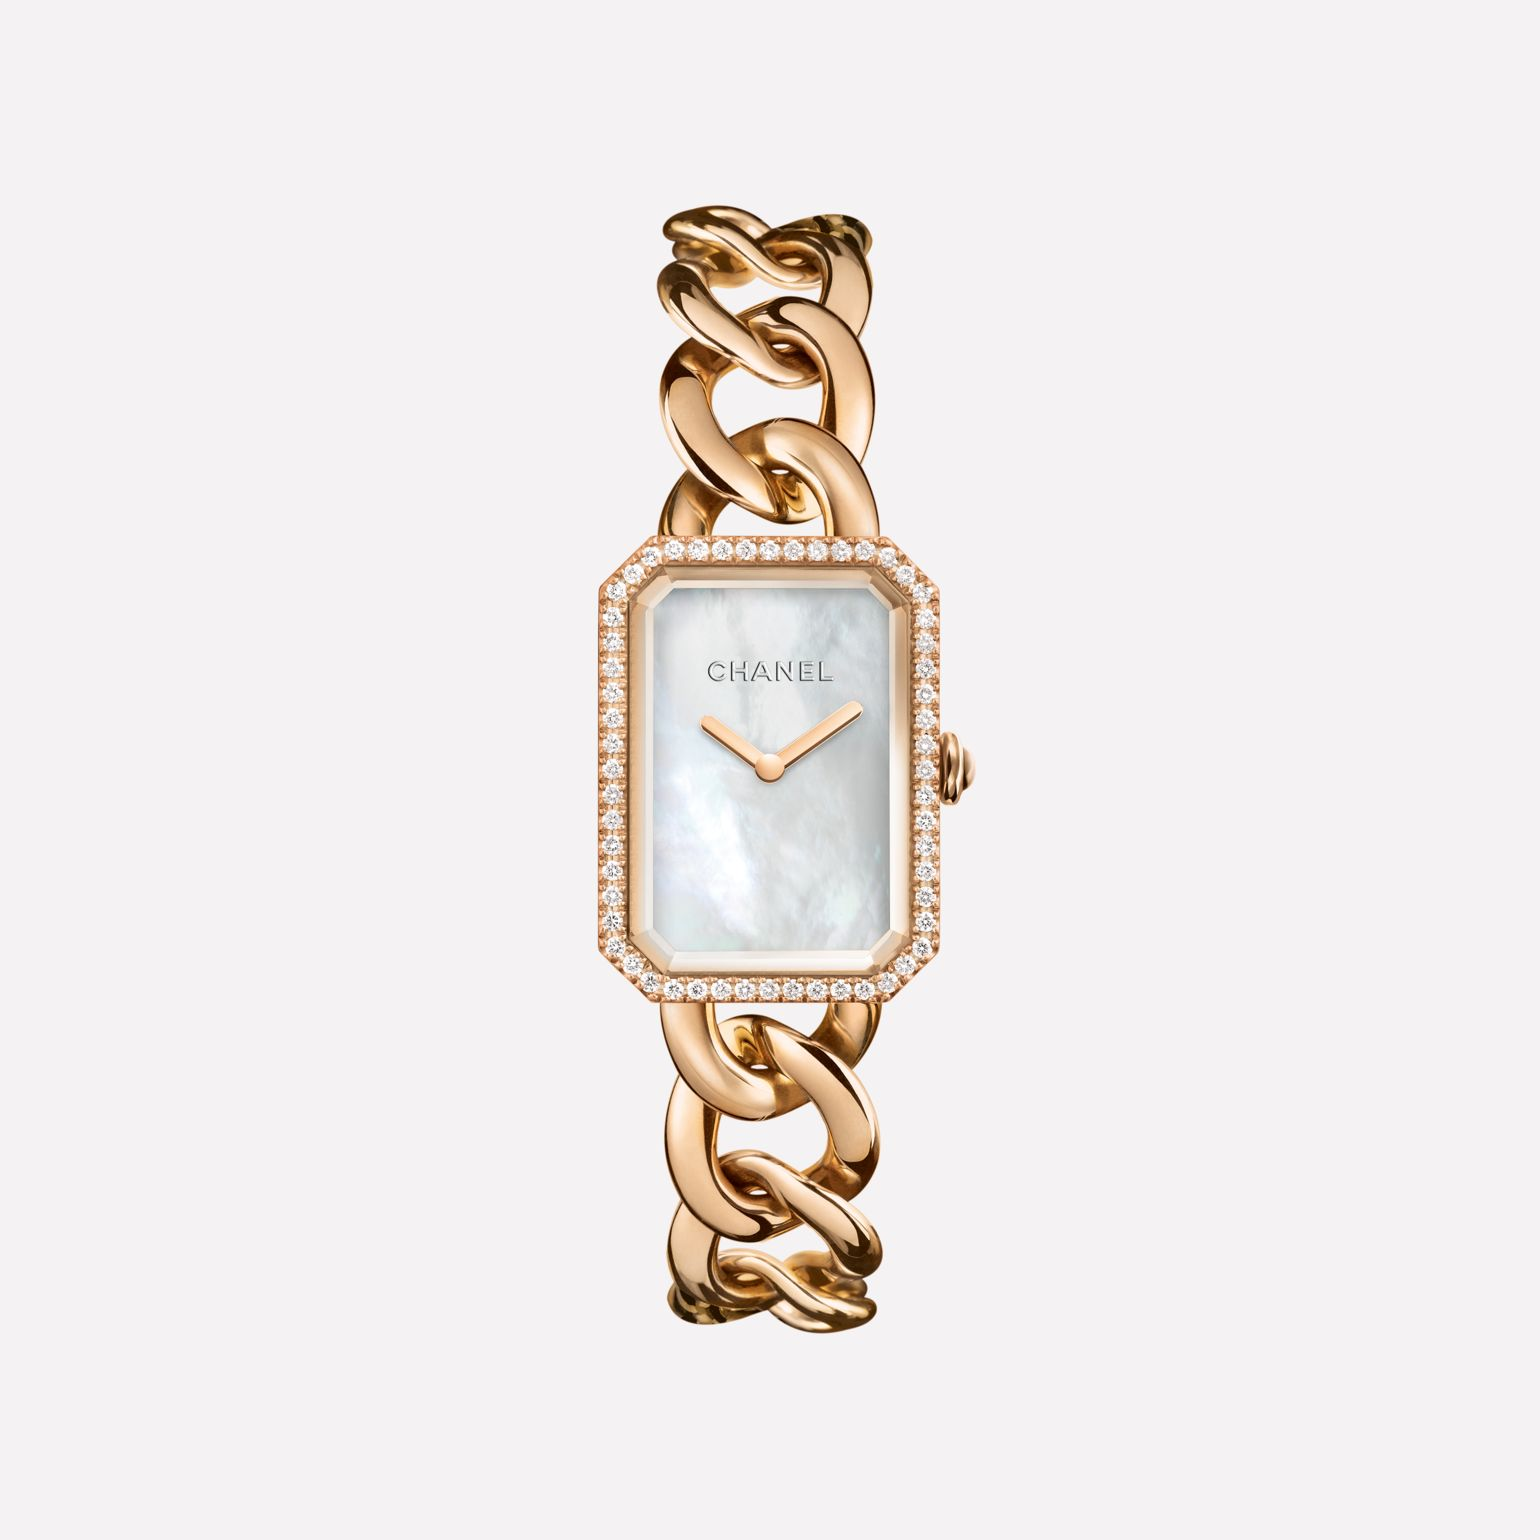 Première Chain Watch Large version, BEIGE GOLD and diamonds, white mother-of-pearl dial